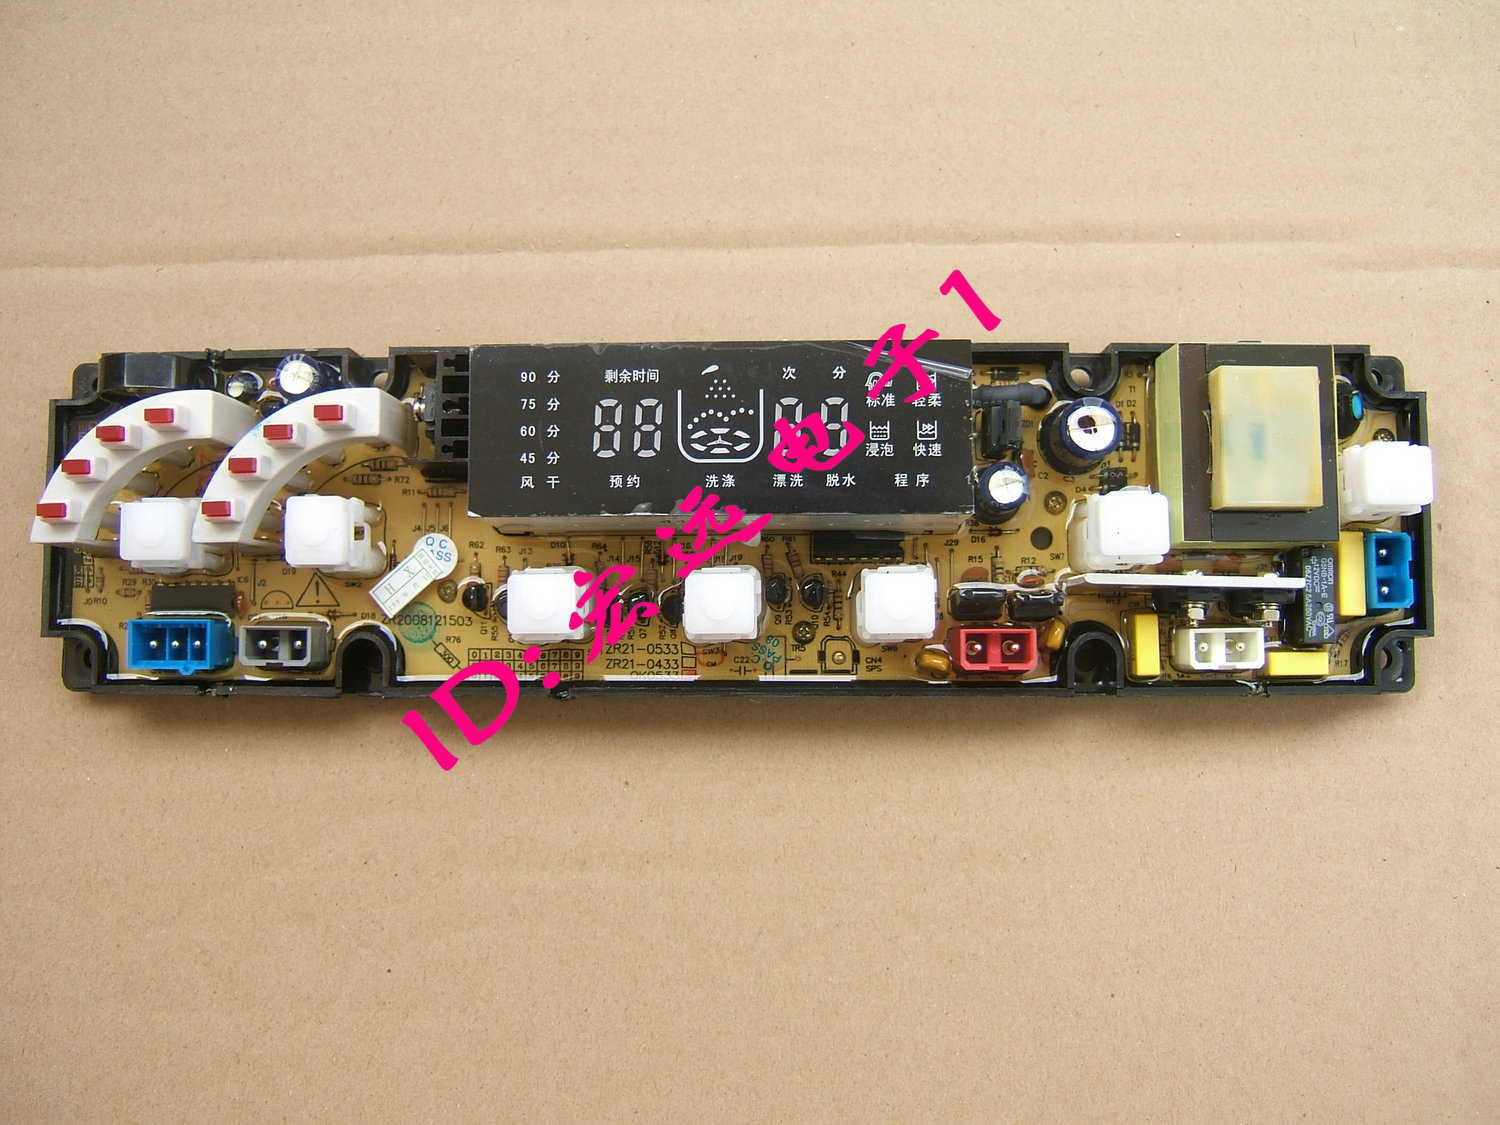 Washing machine board xqb70-912 original motherboard ok0533 zr21-0533 washing machine board dlwl 6510 xqb65 6510 xqb70 7010a motherboard